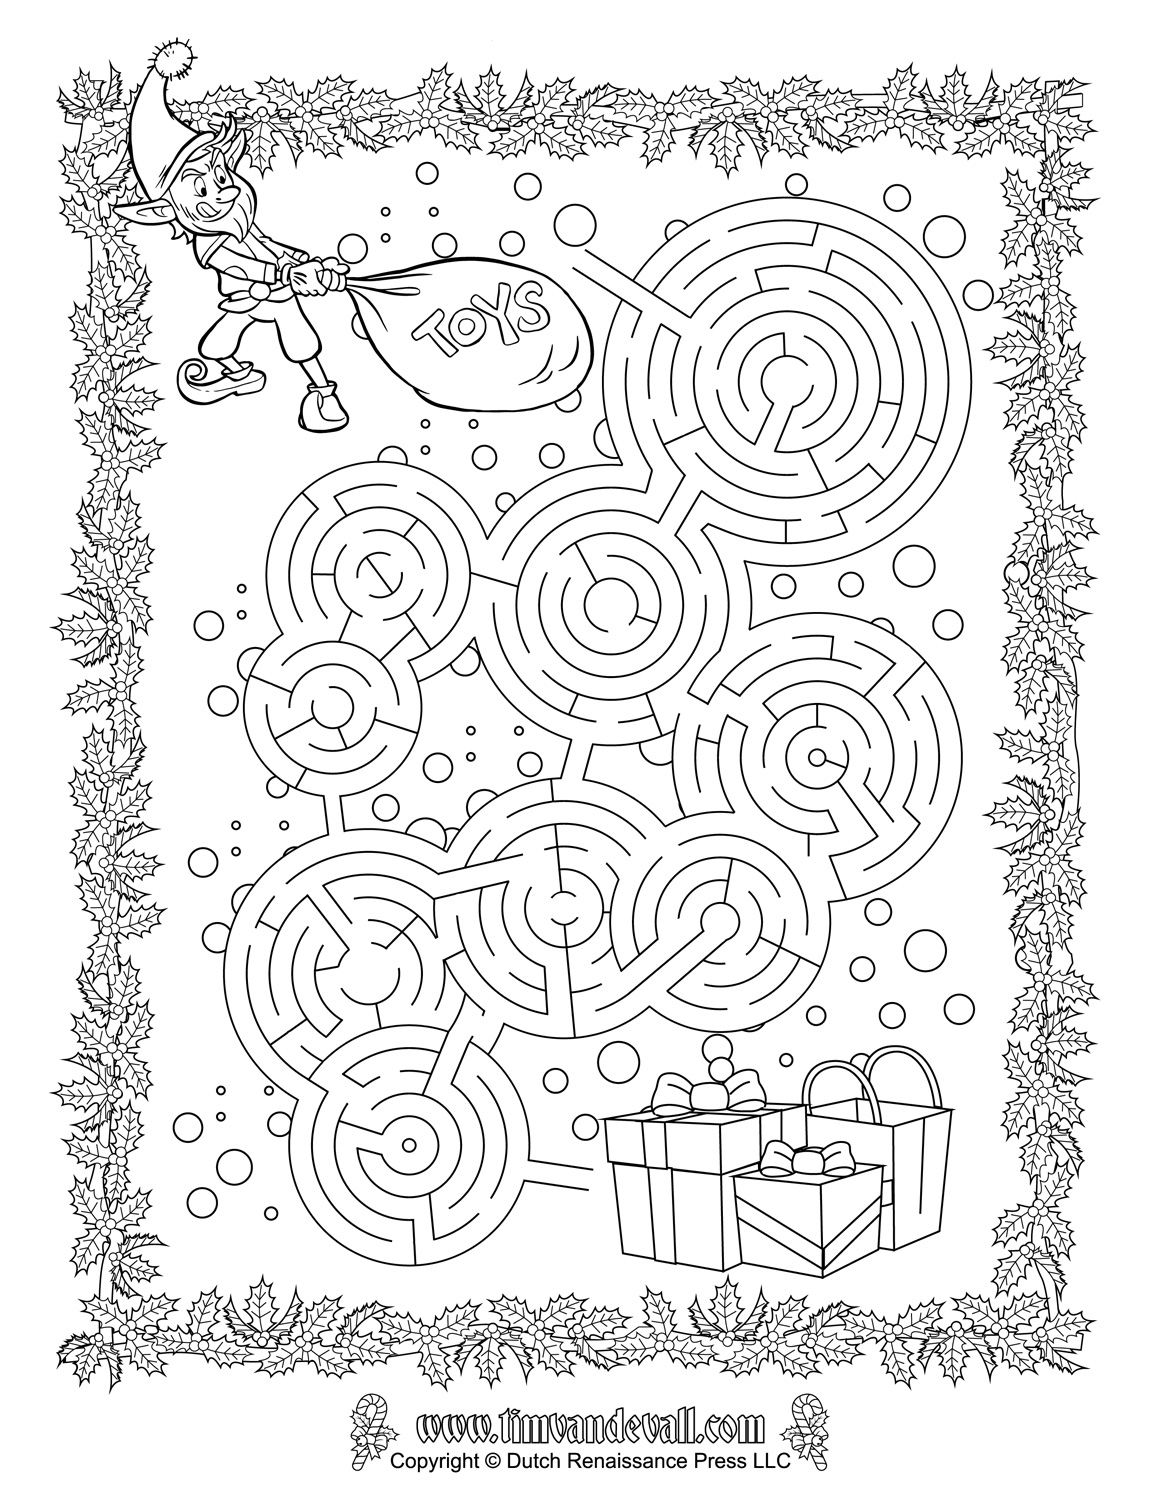 Christmas Maze Printable | Christmas Printables